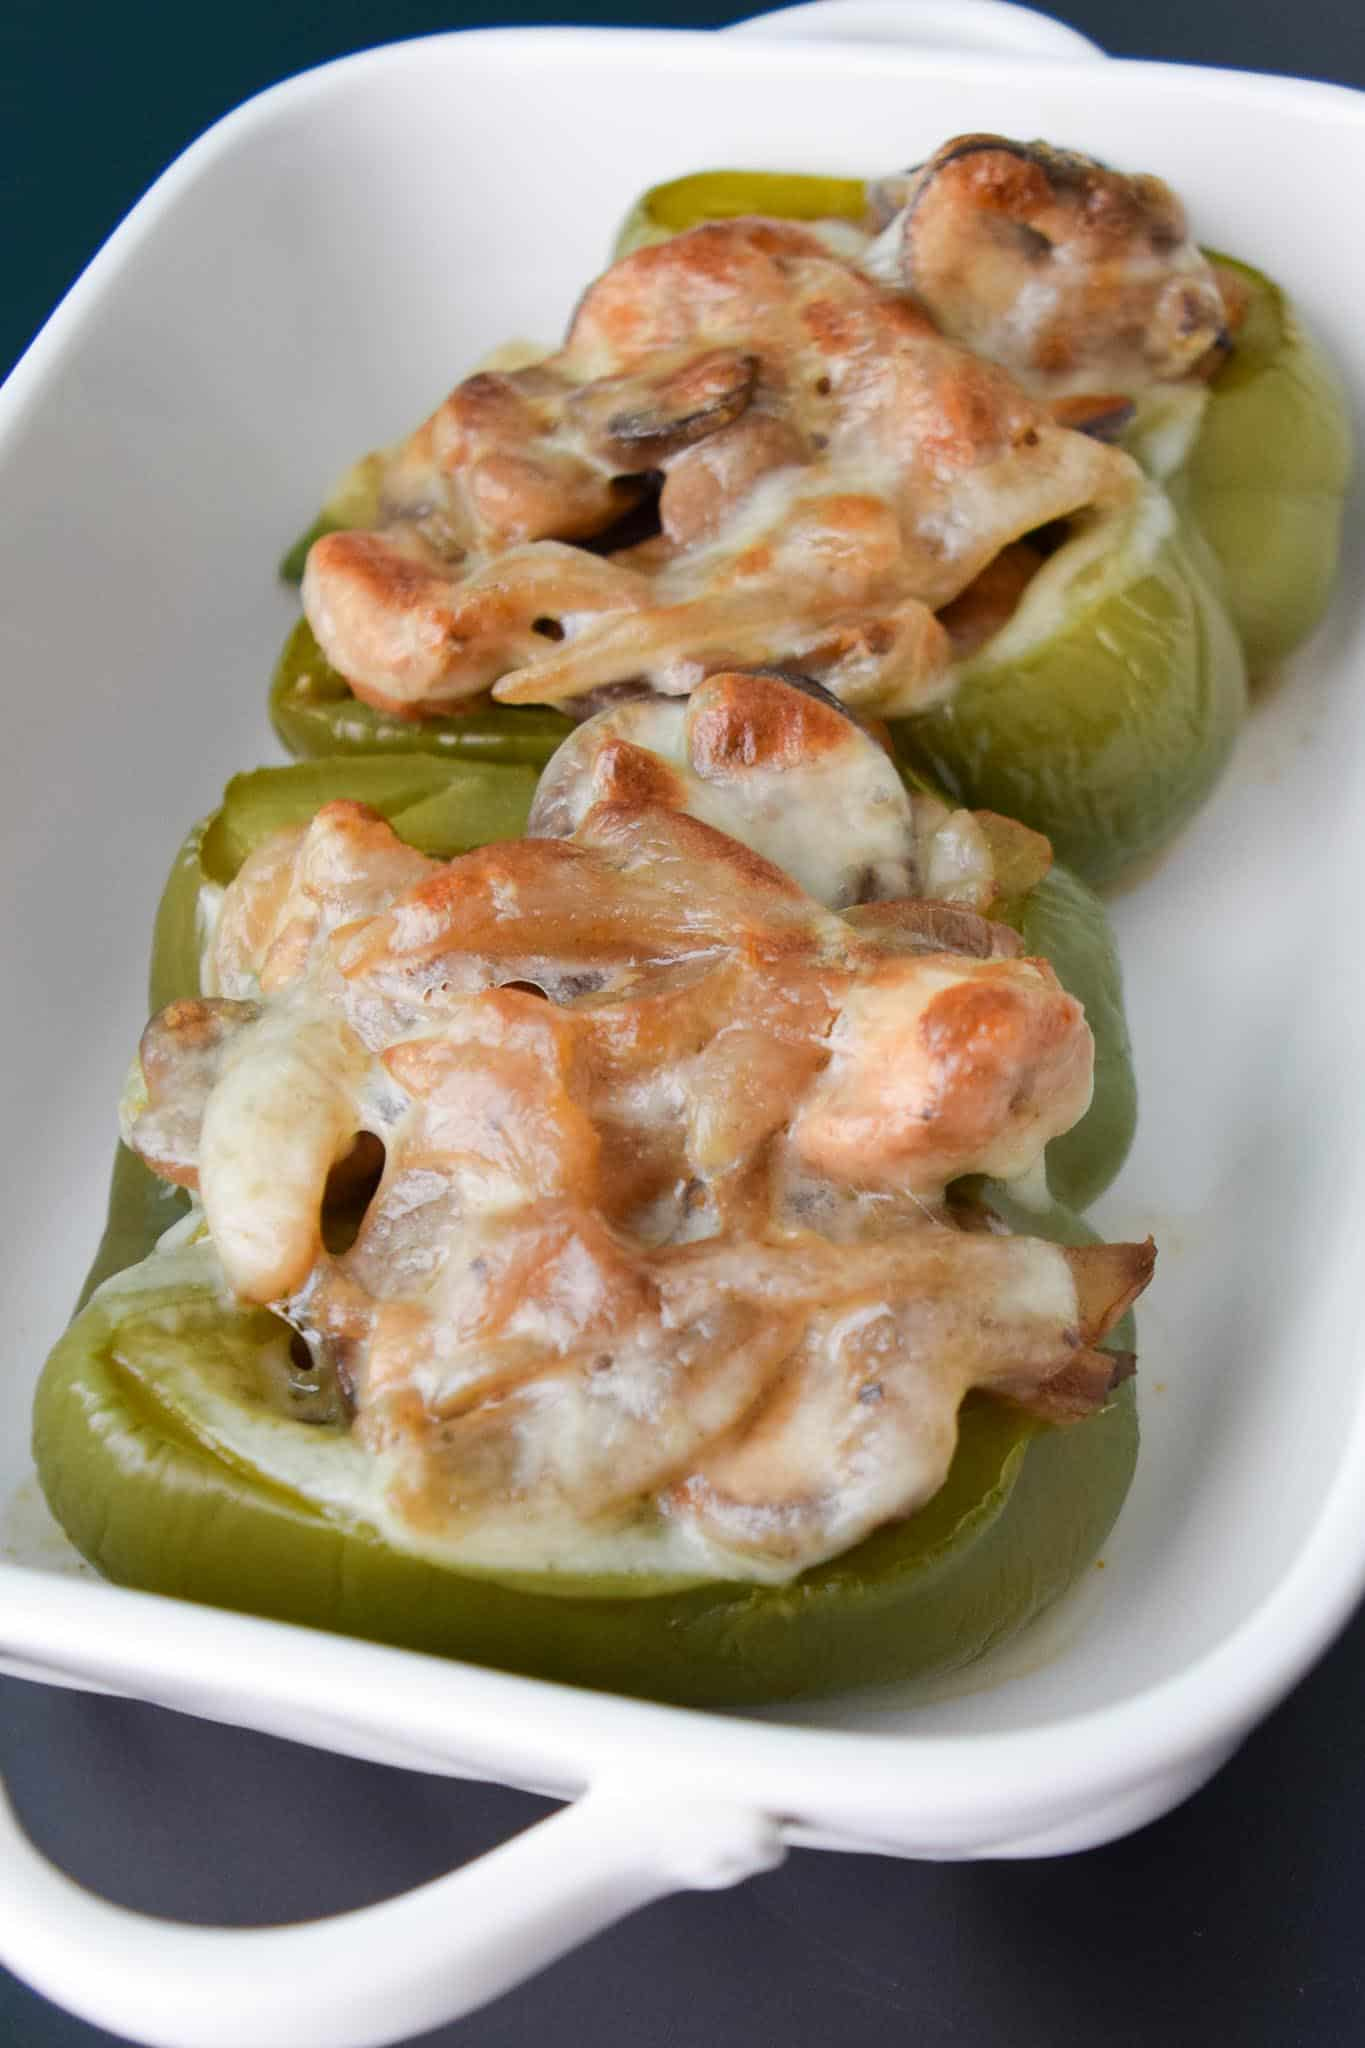 Chicken Philly Stuffed Peppers cooked in white dish close up view